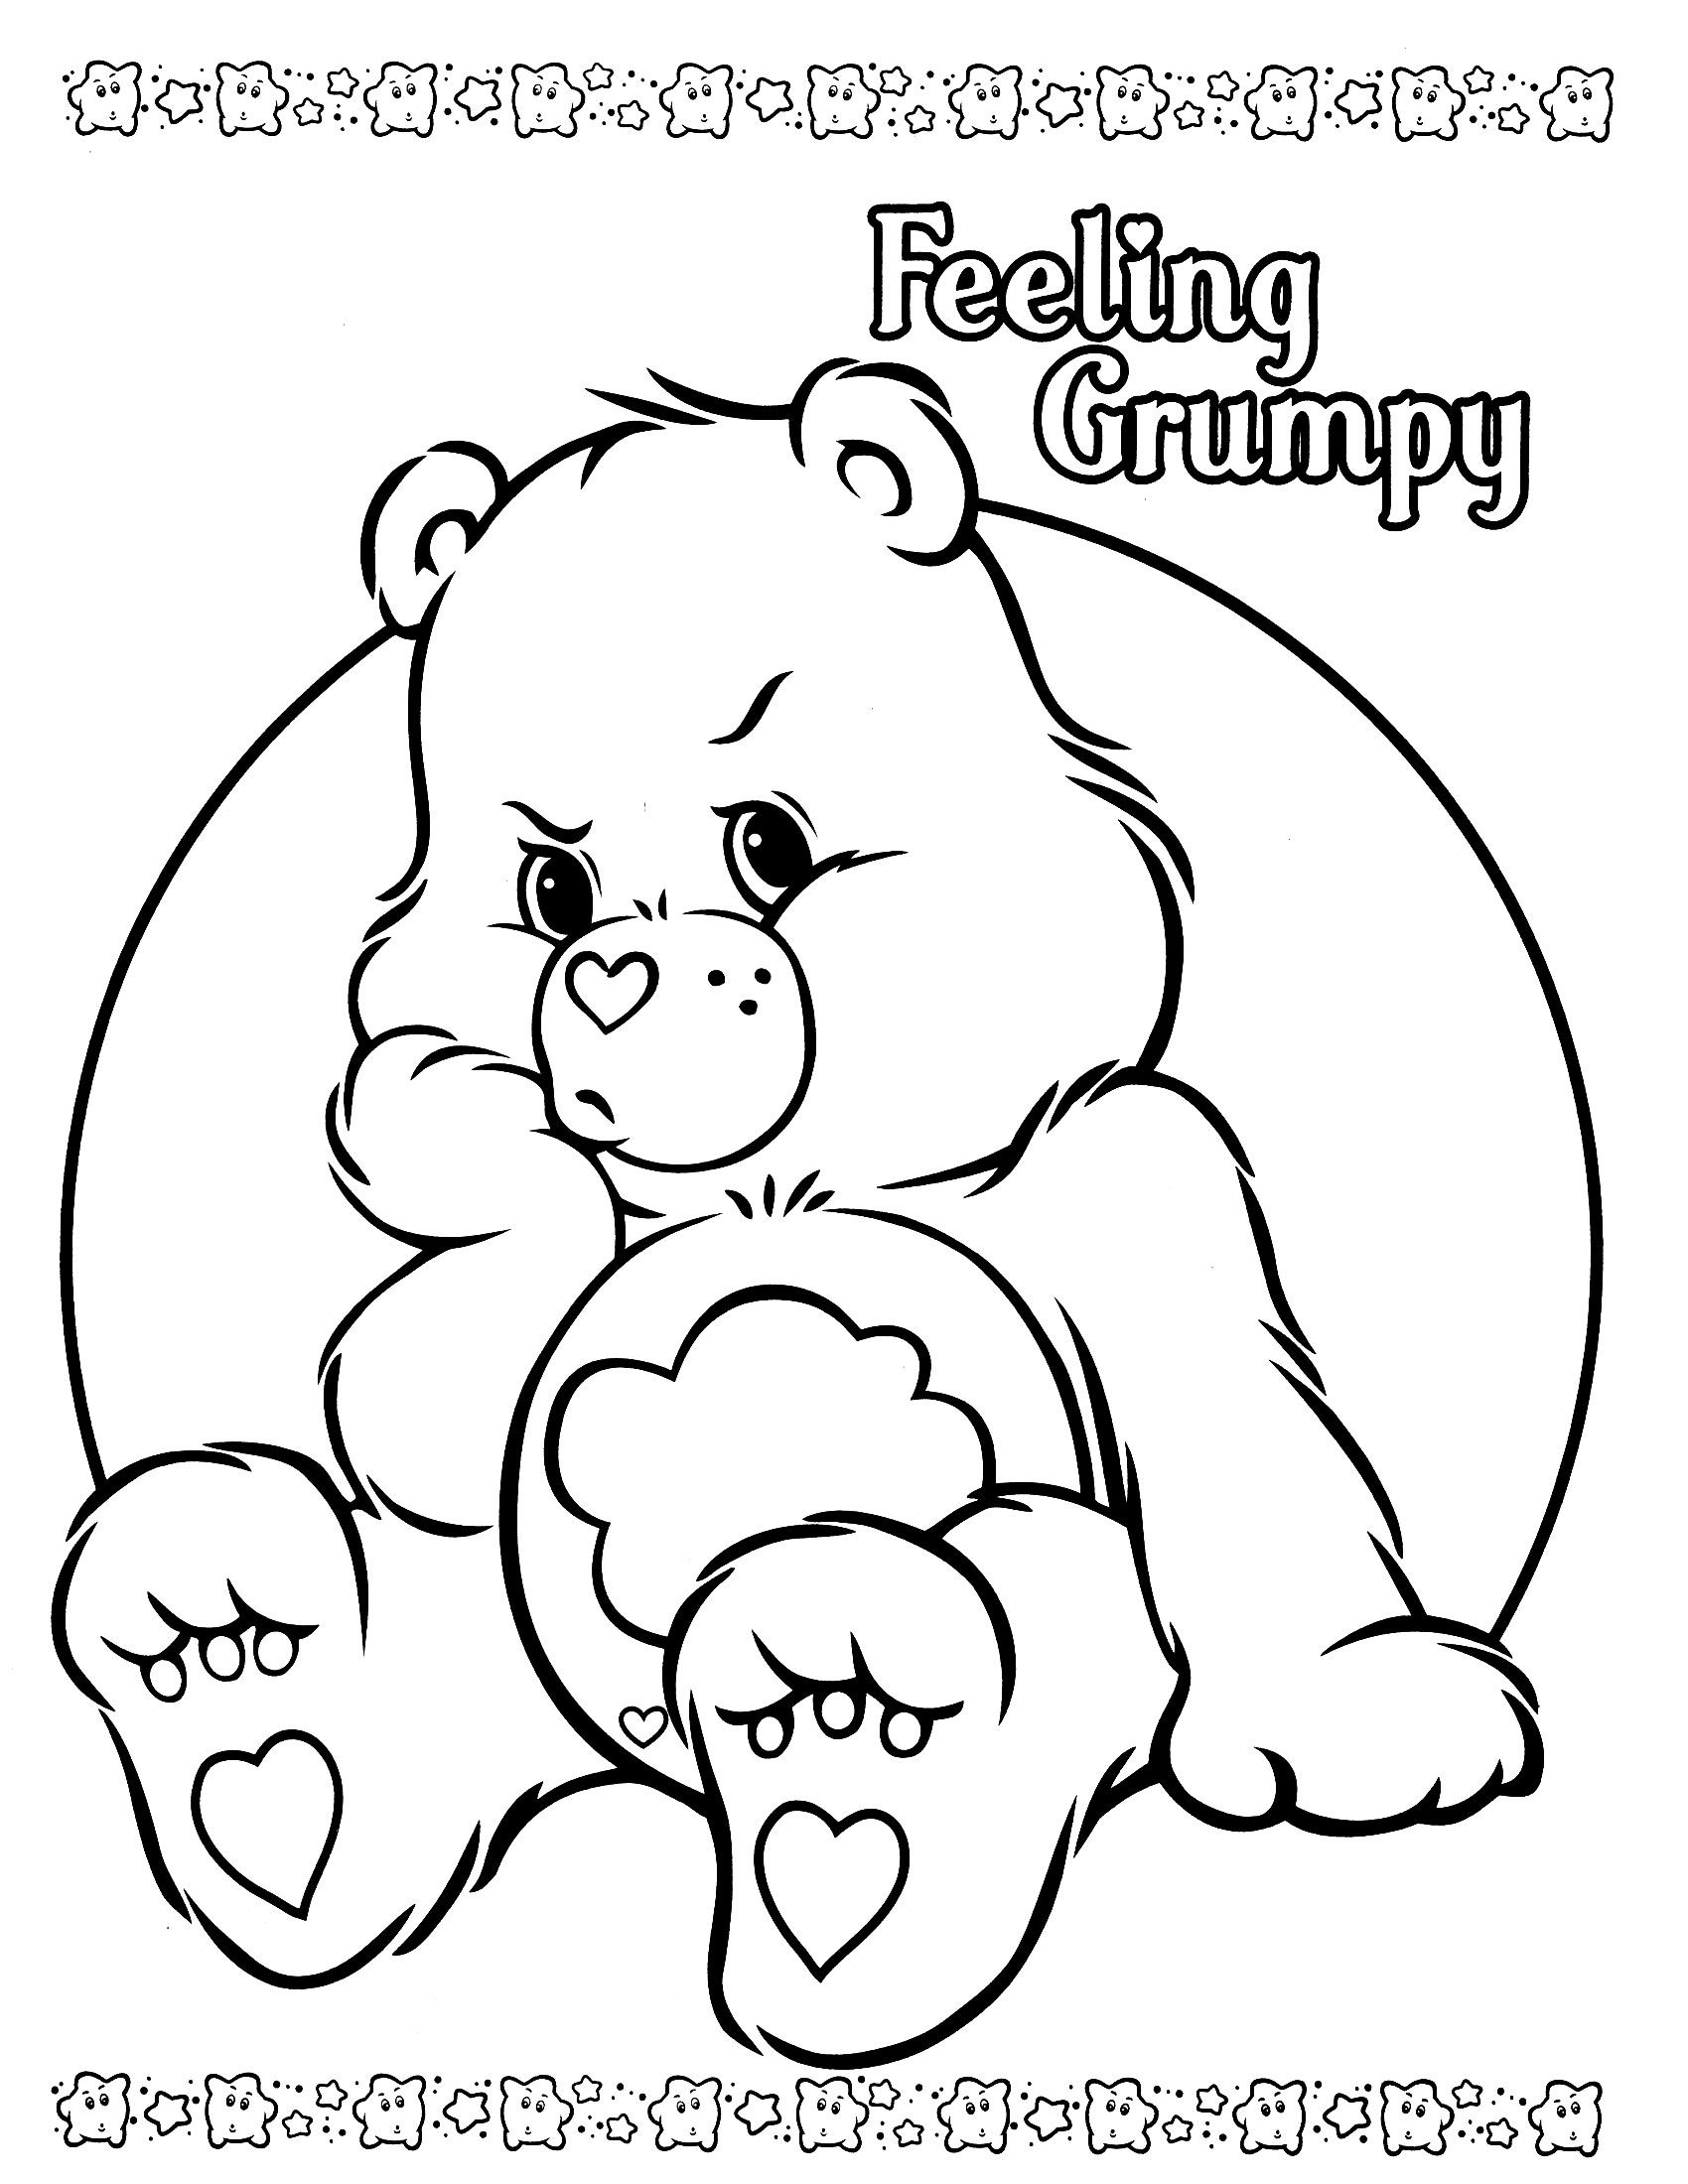 Care Bears Coloring Pages Feeling Grumpy Bear Coloring Pages Cartoon Coloring Pages Coloring Pages